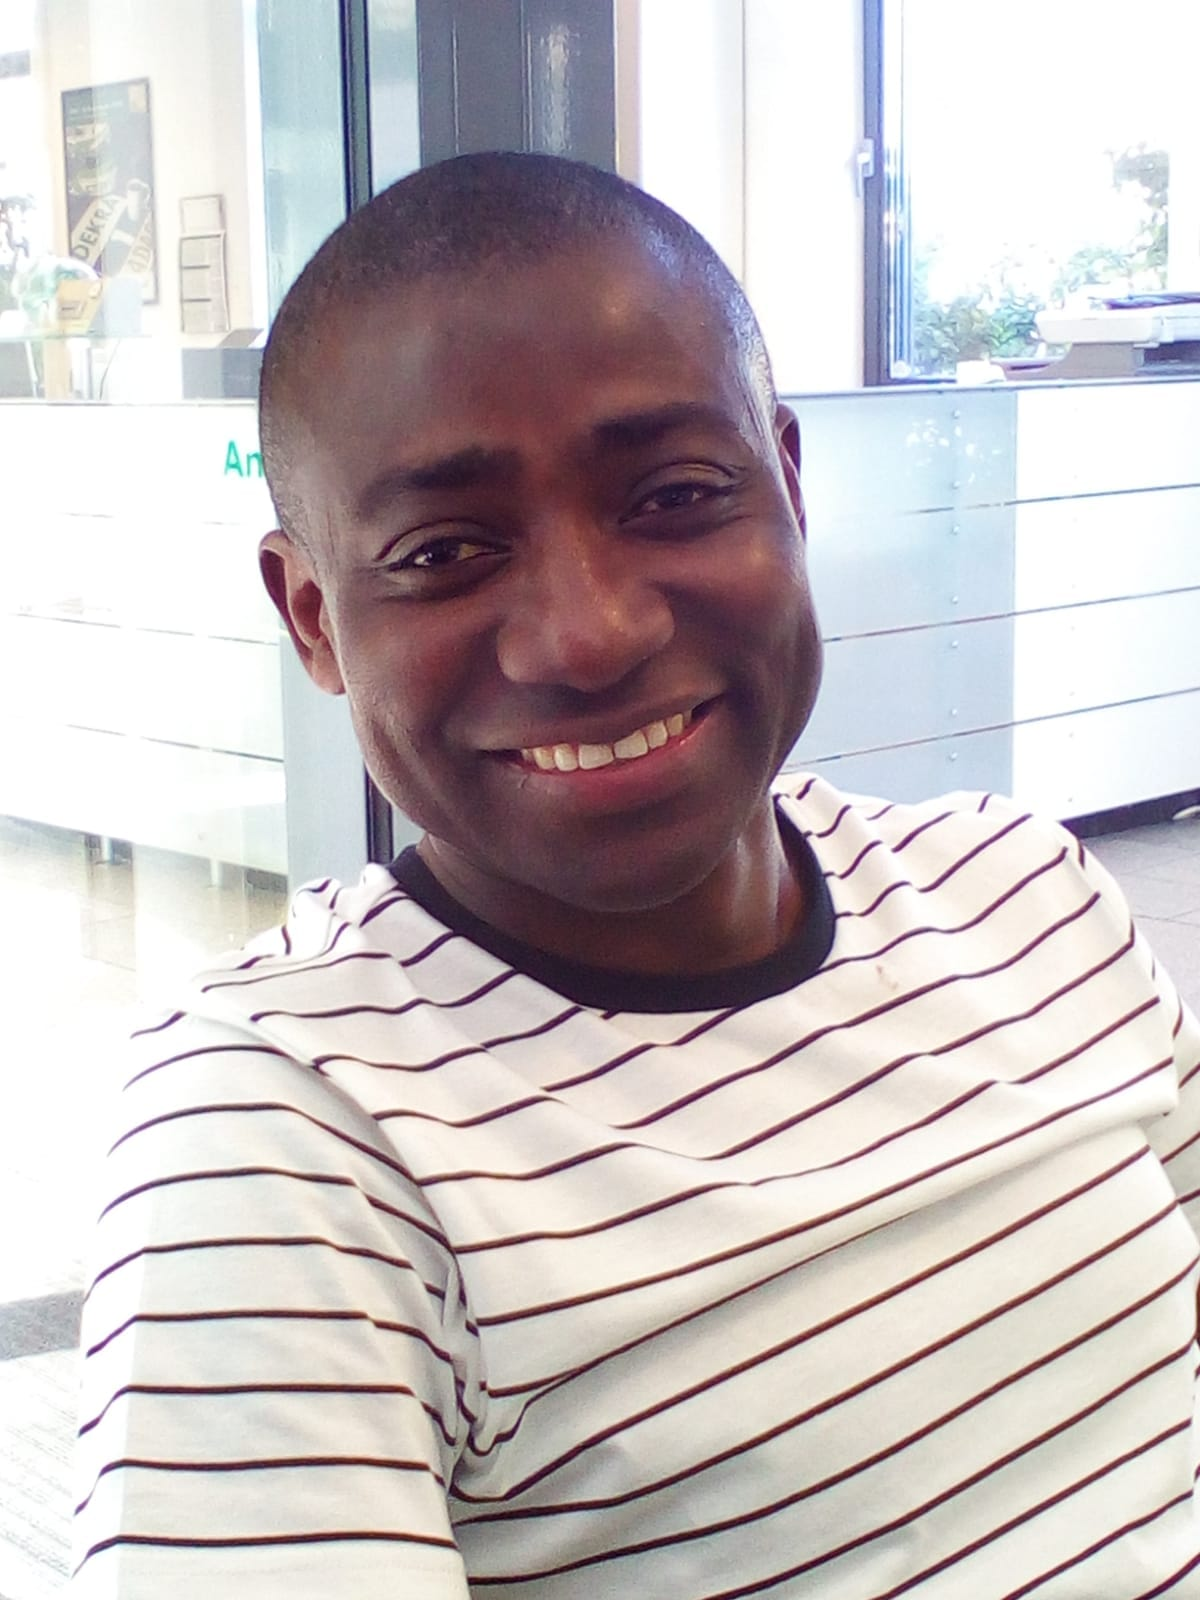 Dr Faisal Garba Muhammed, winner of the Faculty of Humanities' 2020 Emerging Researcher Award